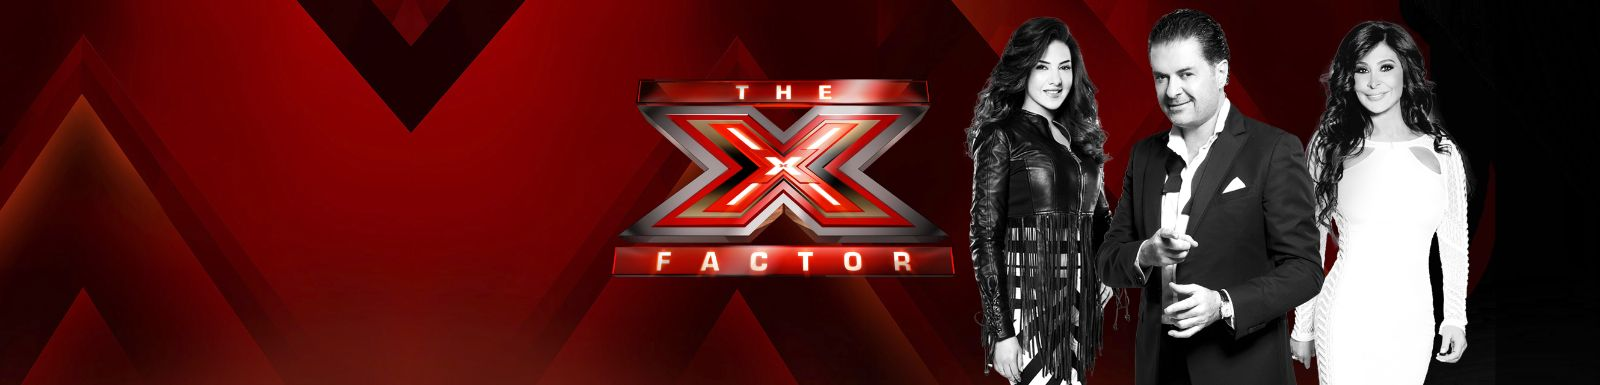 �� ����� The X Factor ��� ���� �� �� �� 4 , ������ ������ ��� ������ ��� ���� MBC 4 ��� ���� 2015 , �� ����� ������ ��� ������ 2015 ���� �����